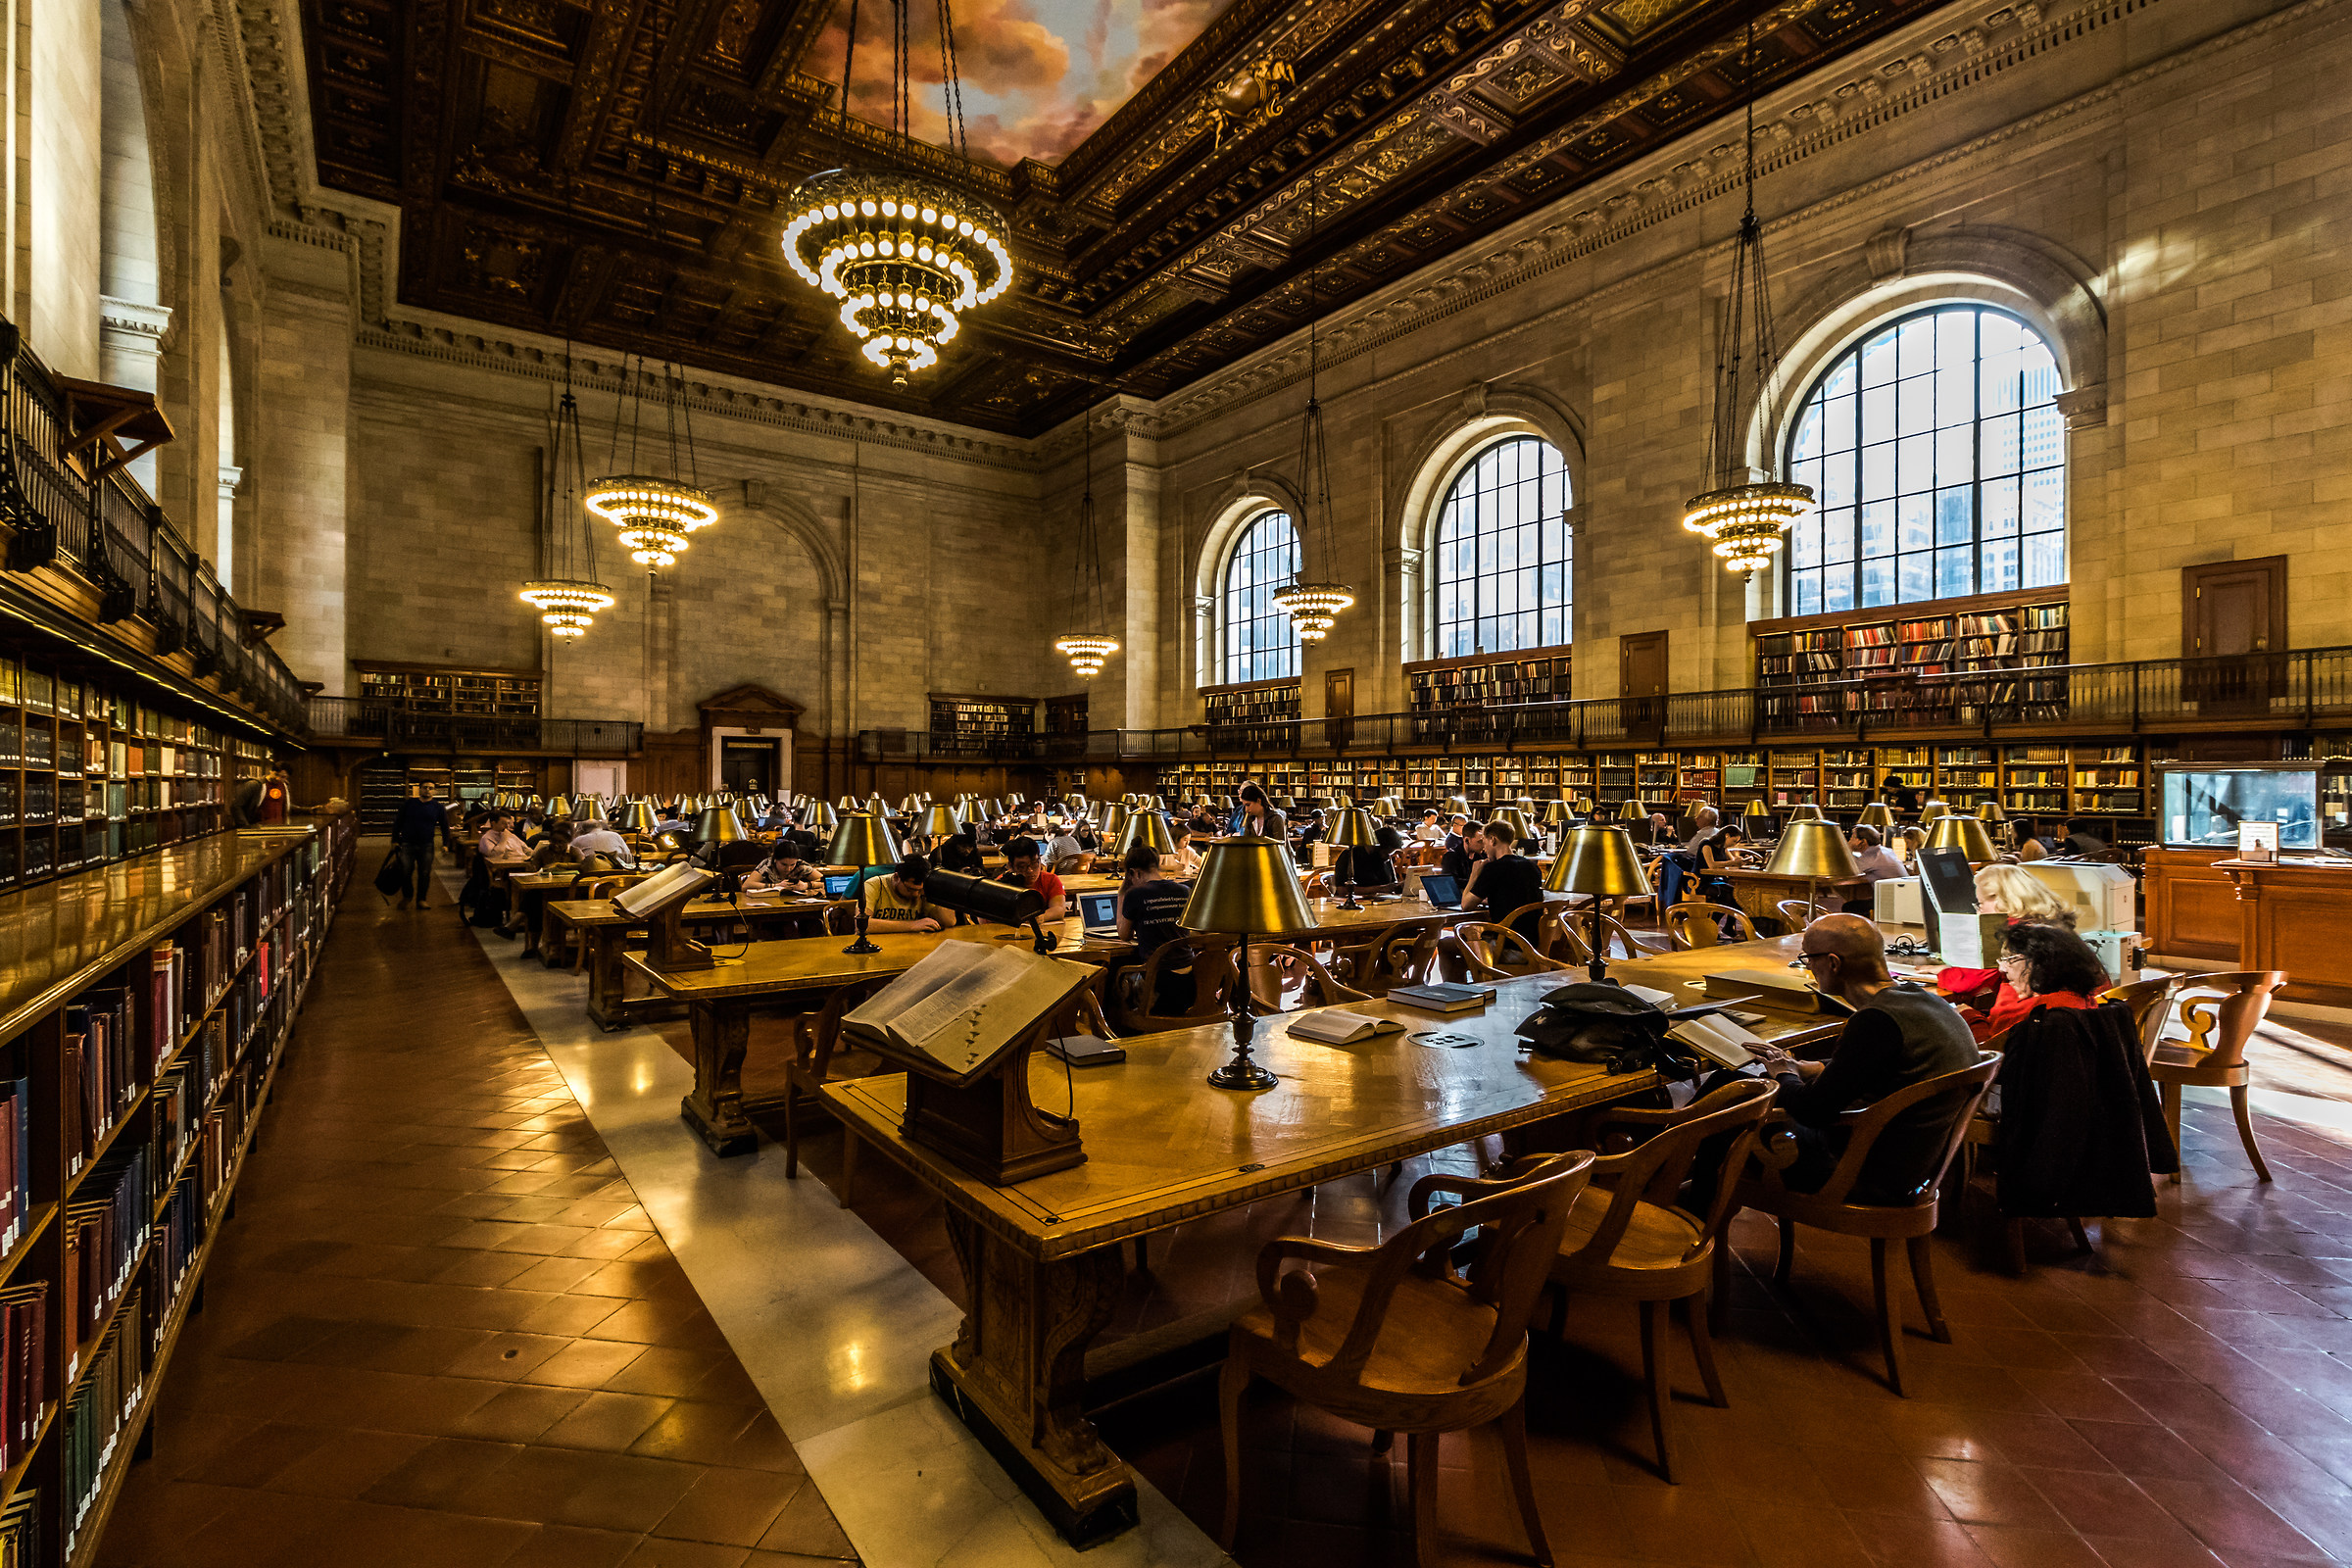 New York Public Library...